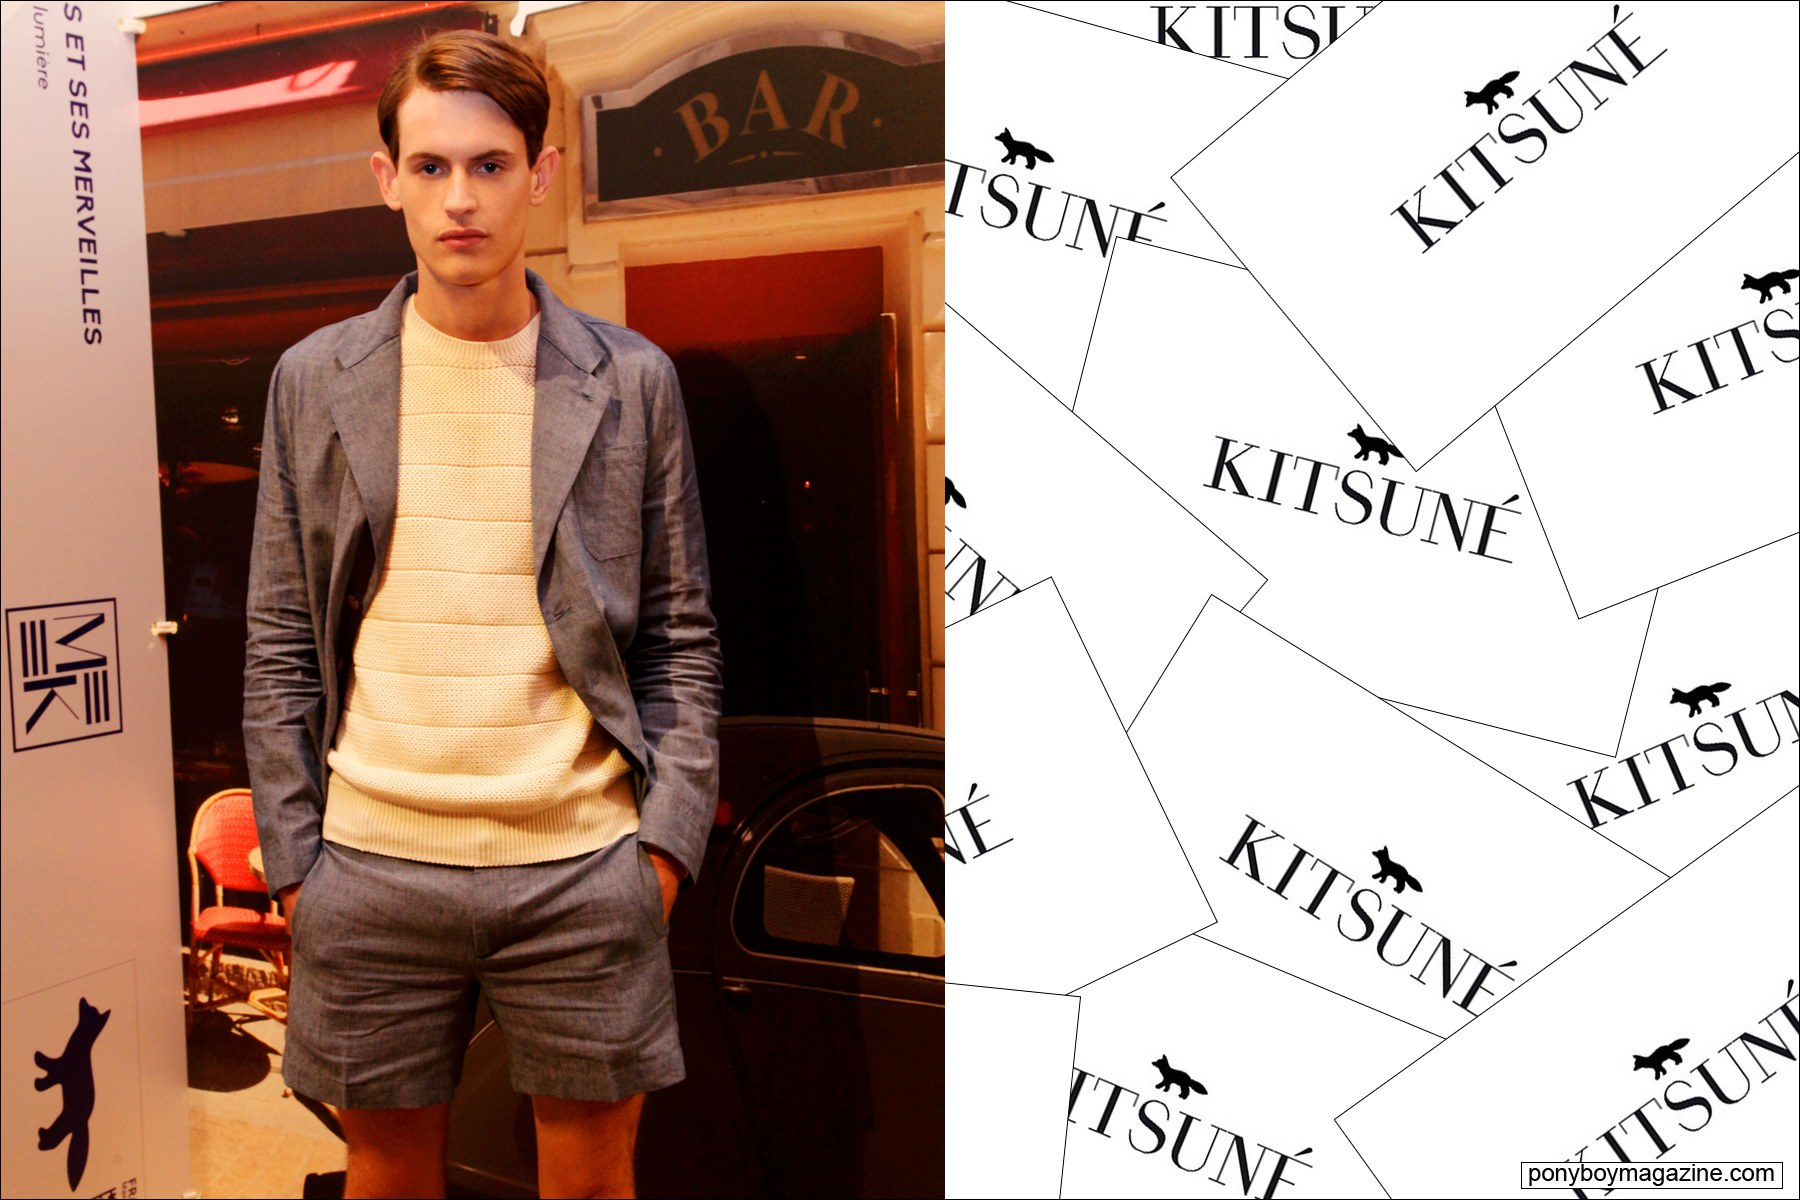 A male model in a grey short suit for Maison Kitsune S/S15 collection. Photo by Alexander Thompson for Ponyboy magazine.